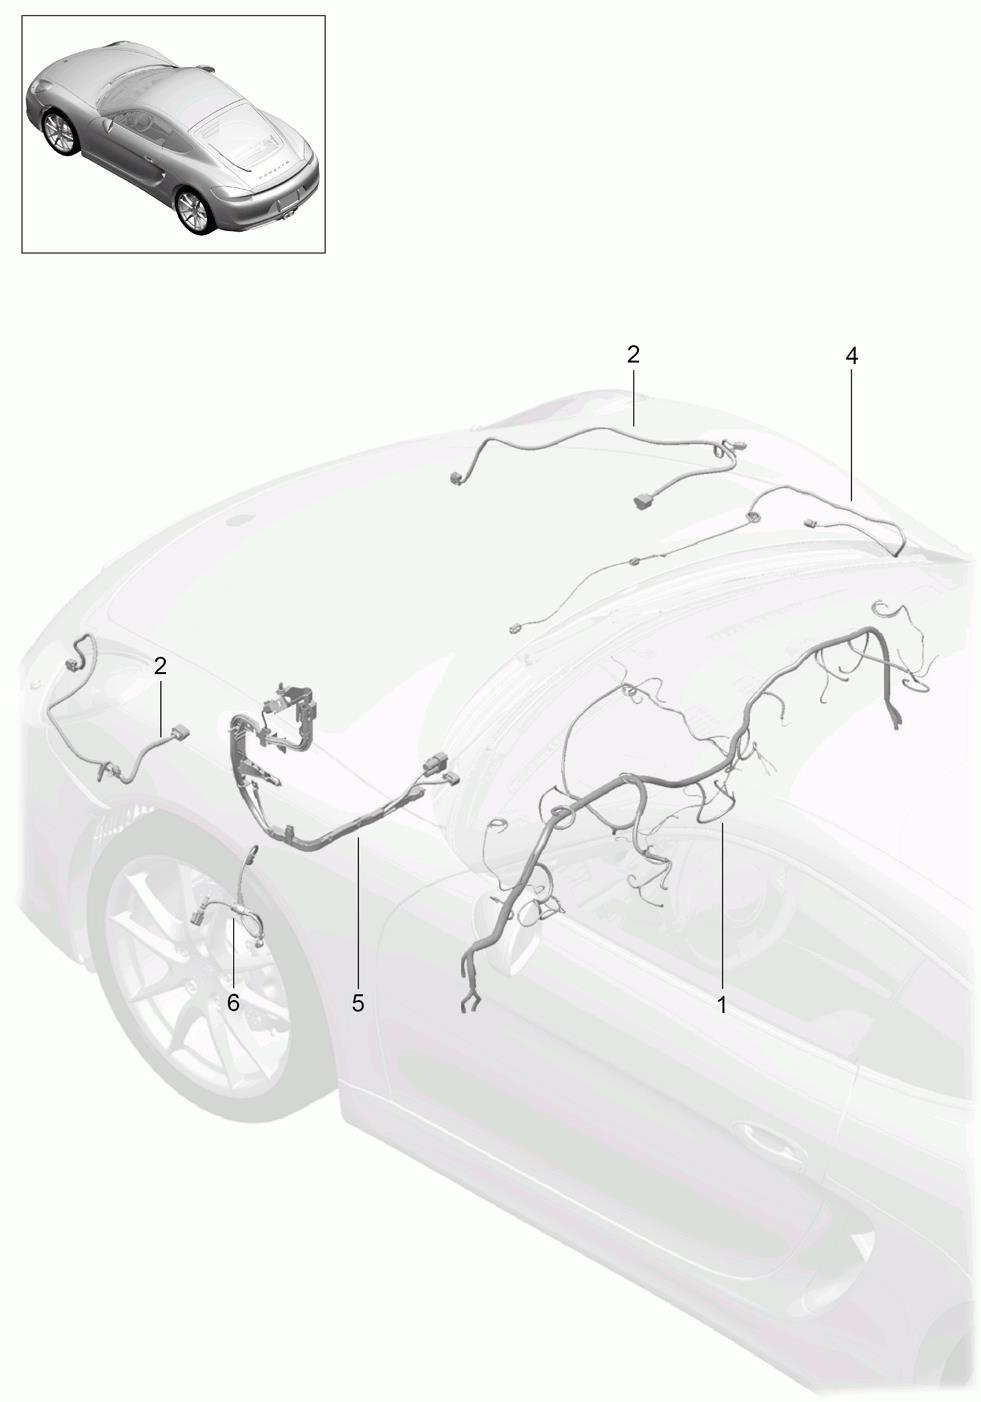 Porsche Cayman Wiring Harness Right Lining Front